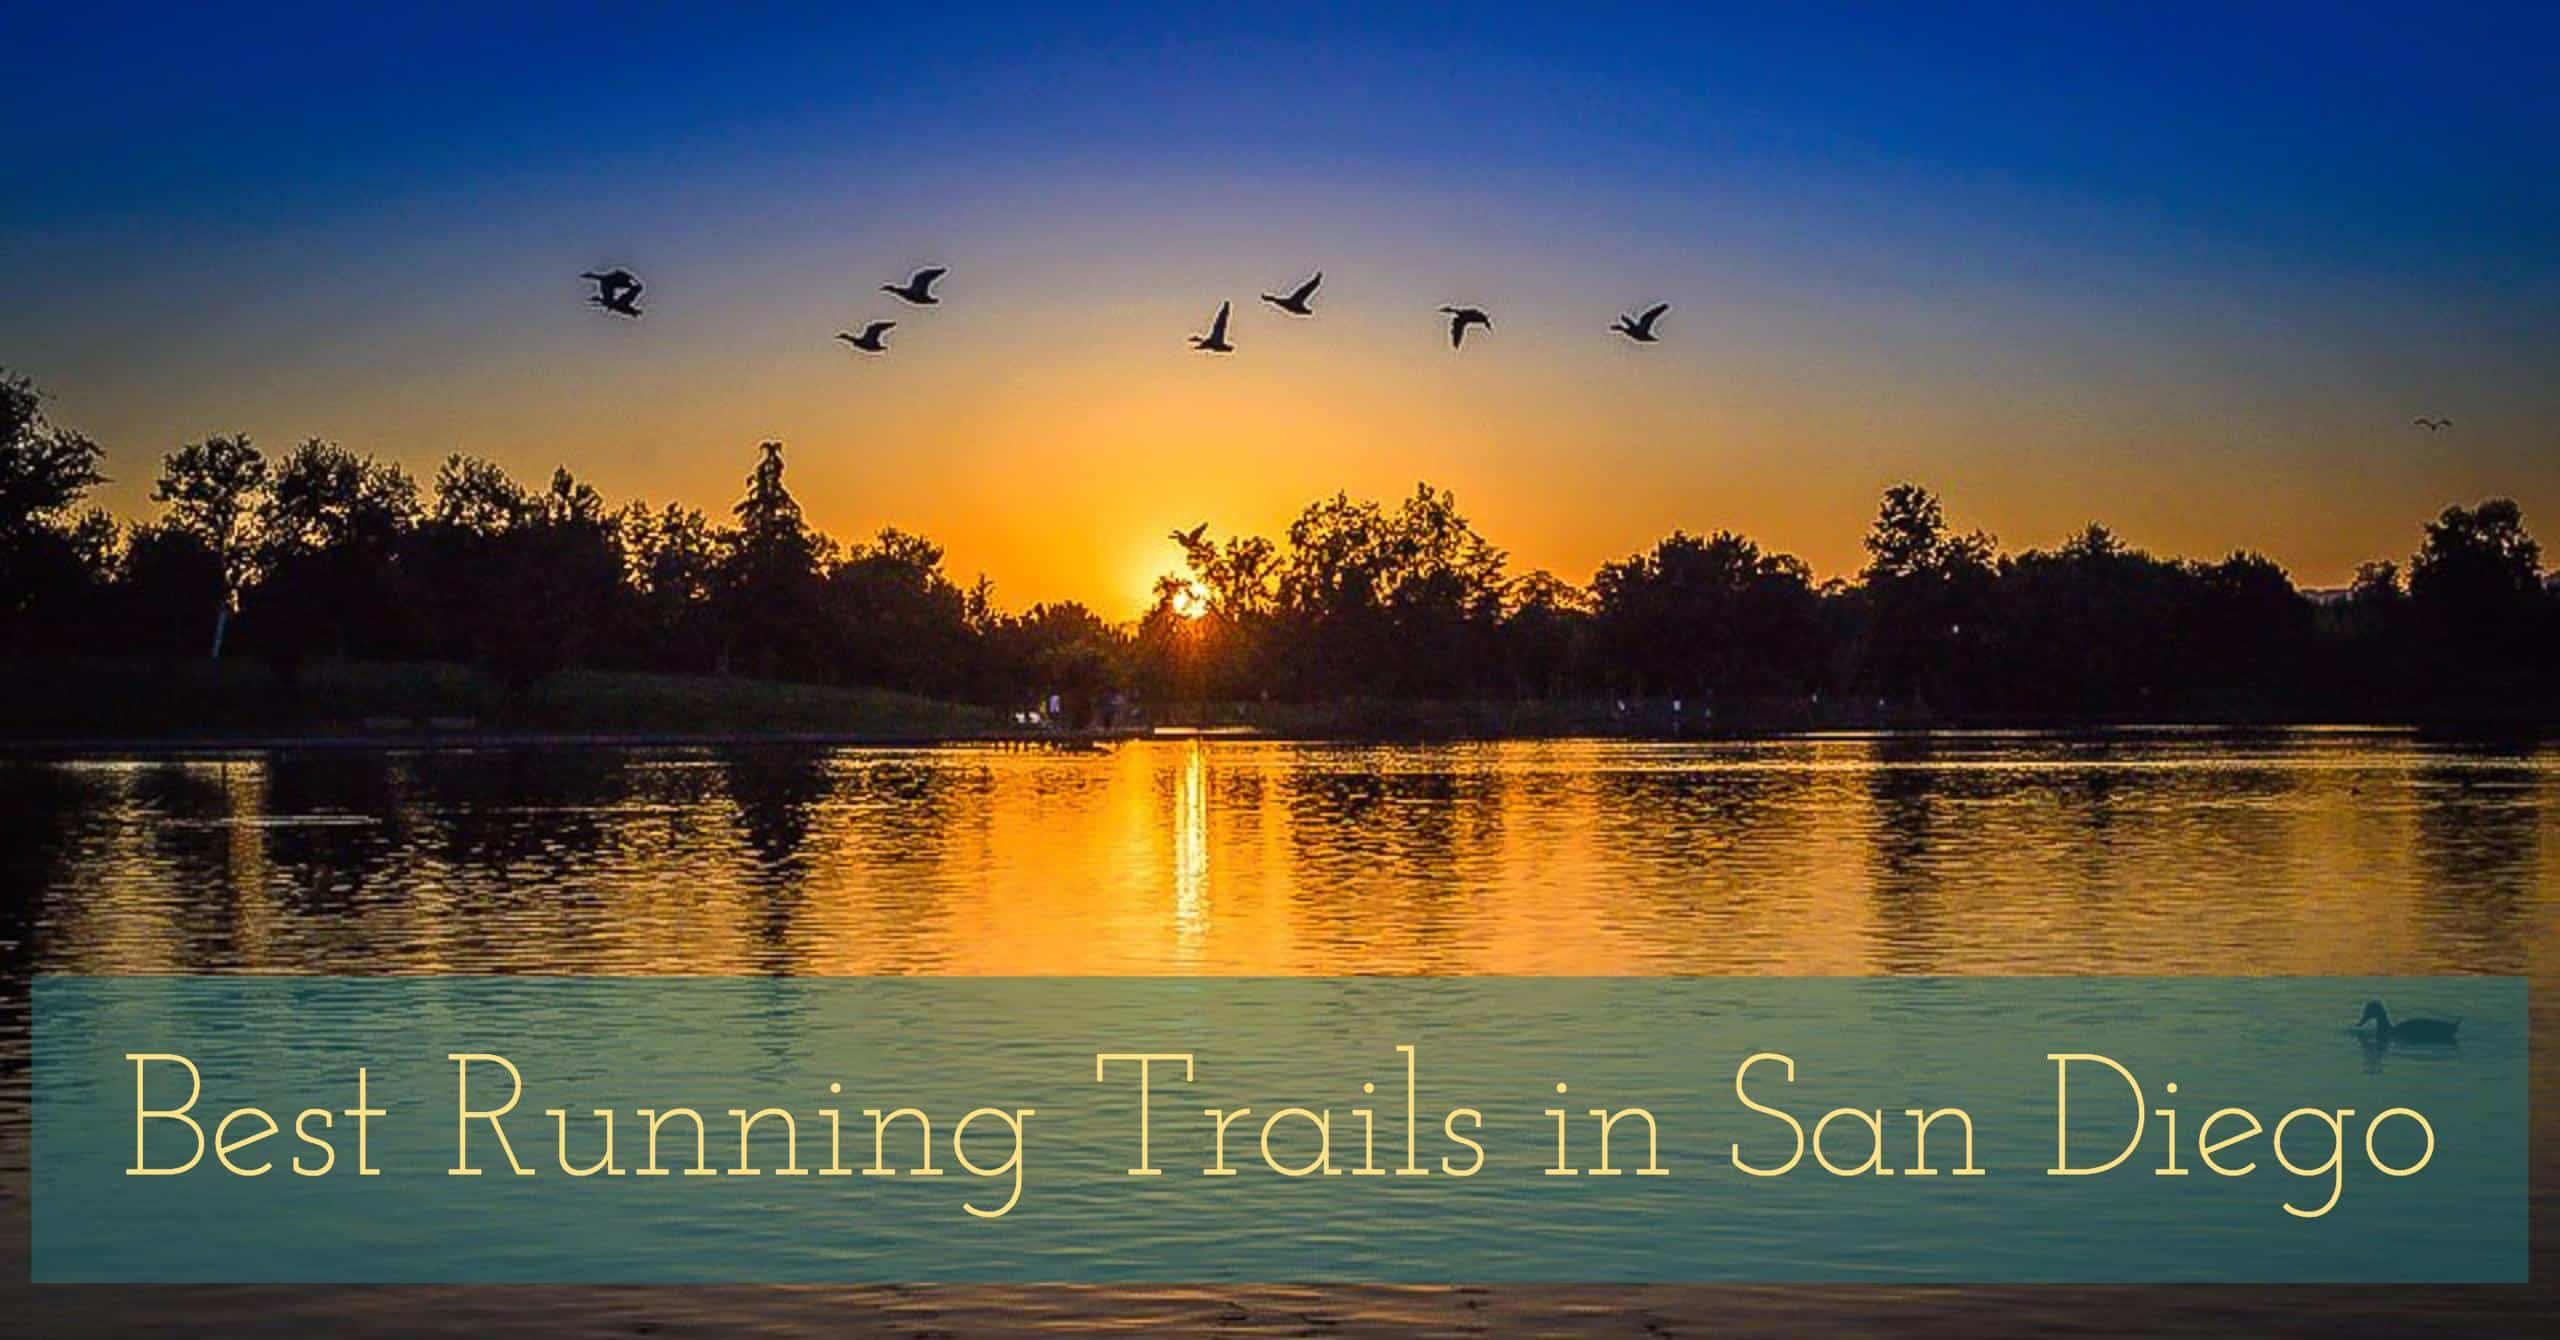 San Diego features some of the most breath-taking views in all of California. We rank the 10 Best Running Trails in San Diego